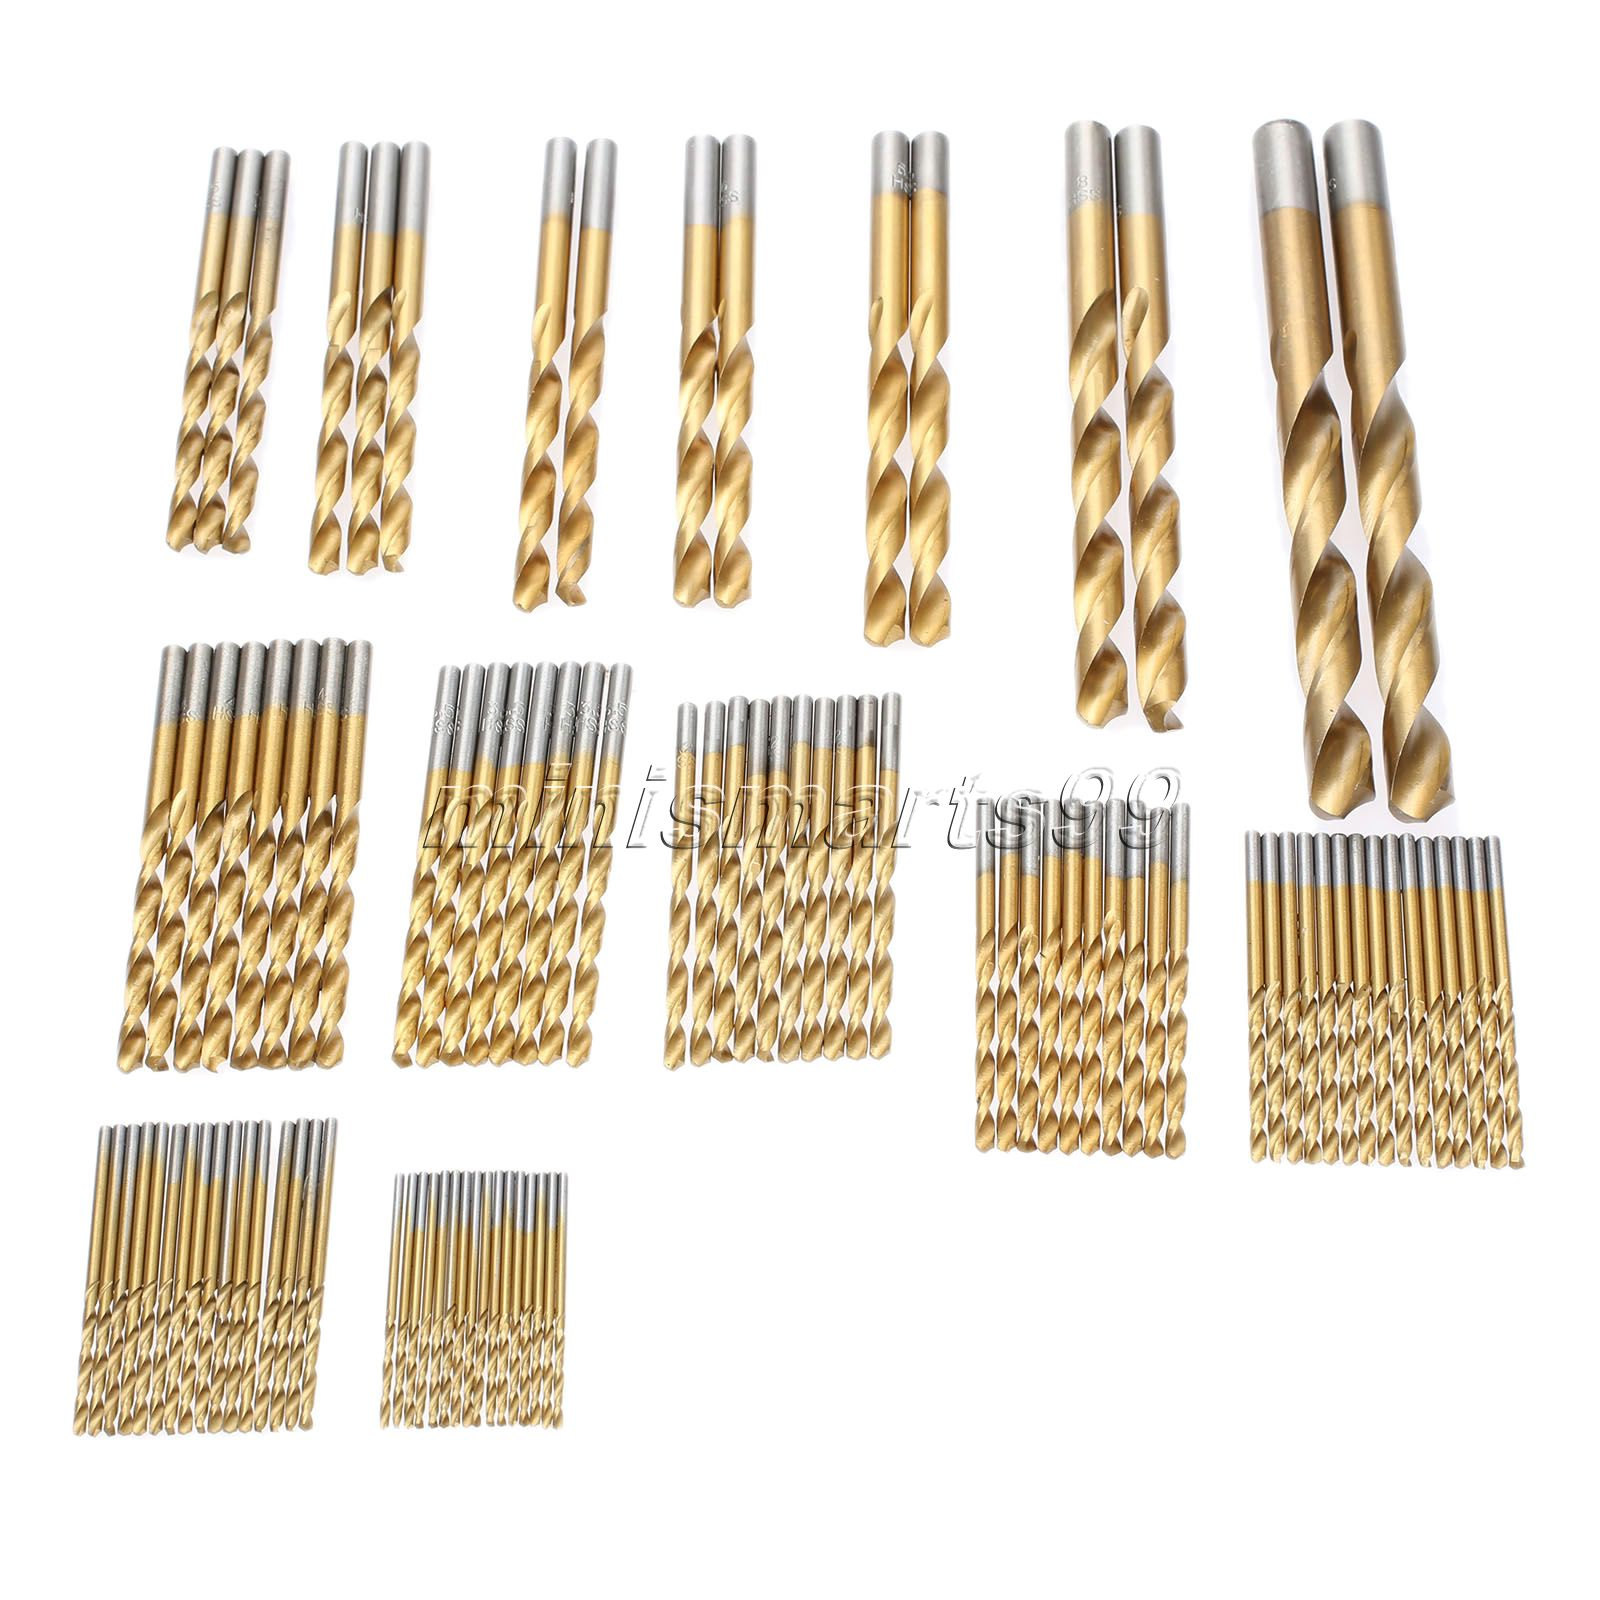 91.5mm-10mm Titanium Coated Drill Tools HSS High Speed Steel Twist Bit Set Woodworking Power Accessories